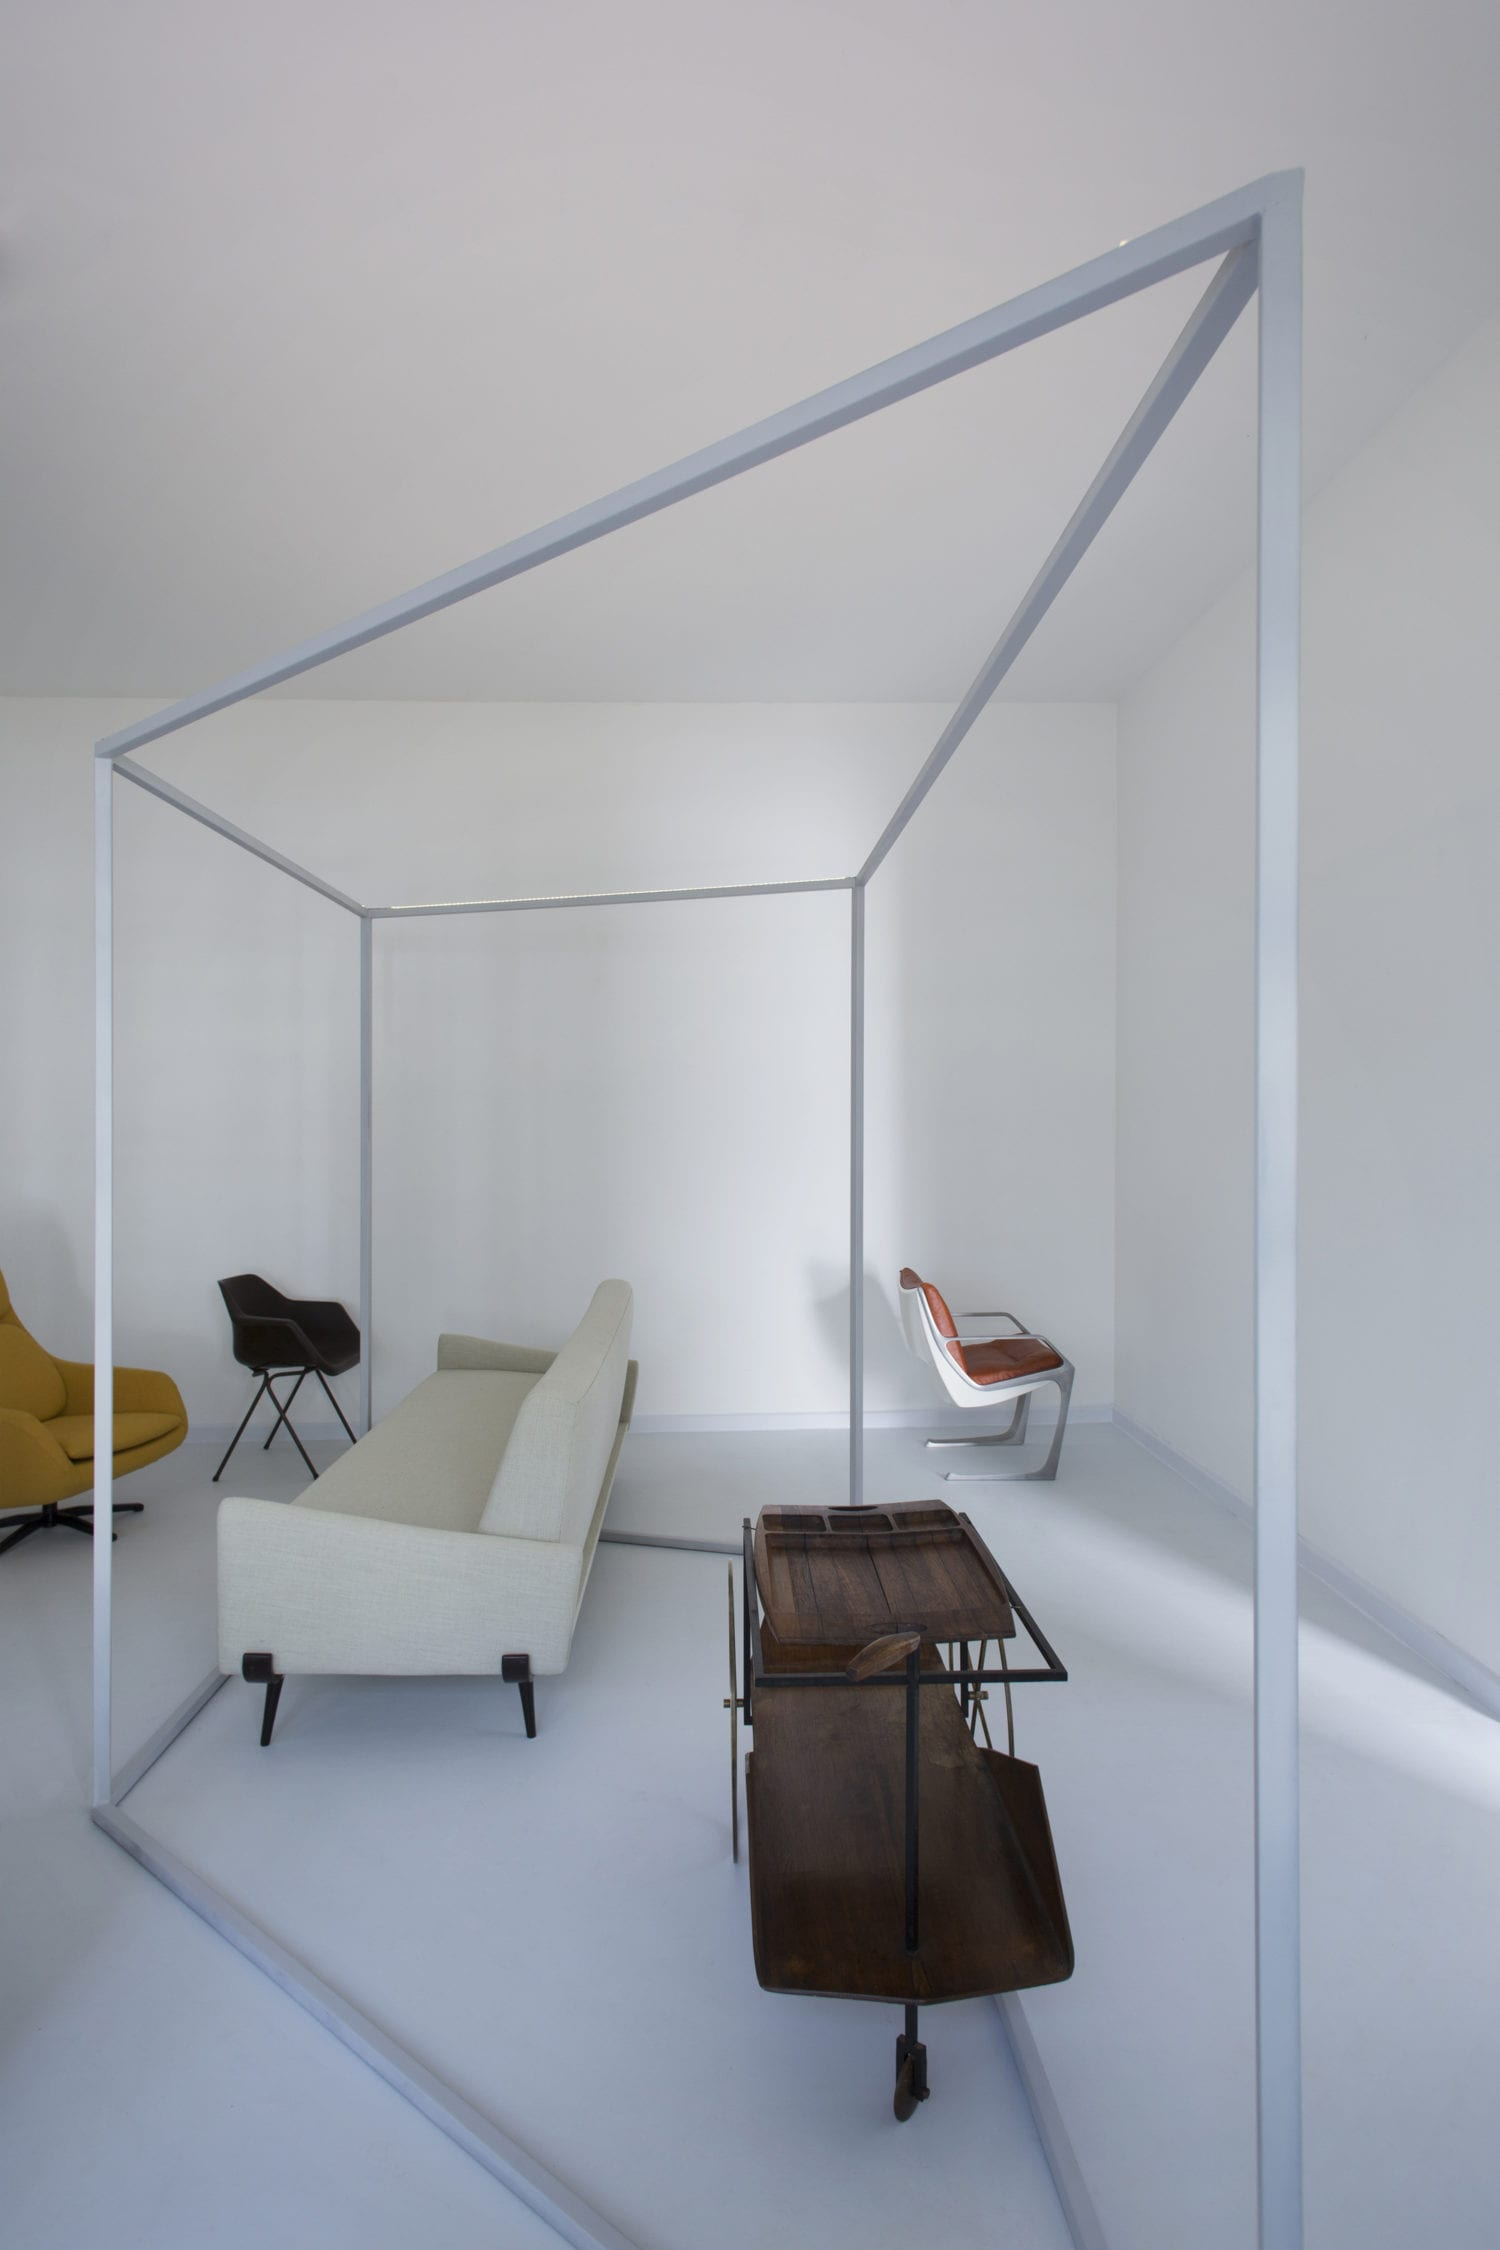 Apartment 61 Home Gallery In Sao Paulo Brazil By Mnma Studio Yellowtrace 05